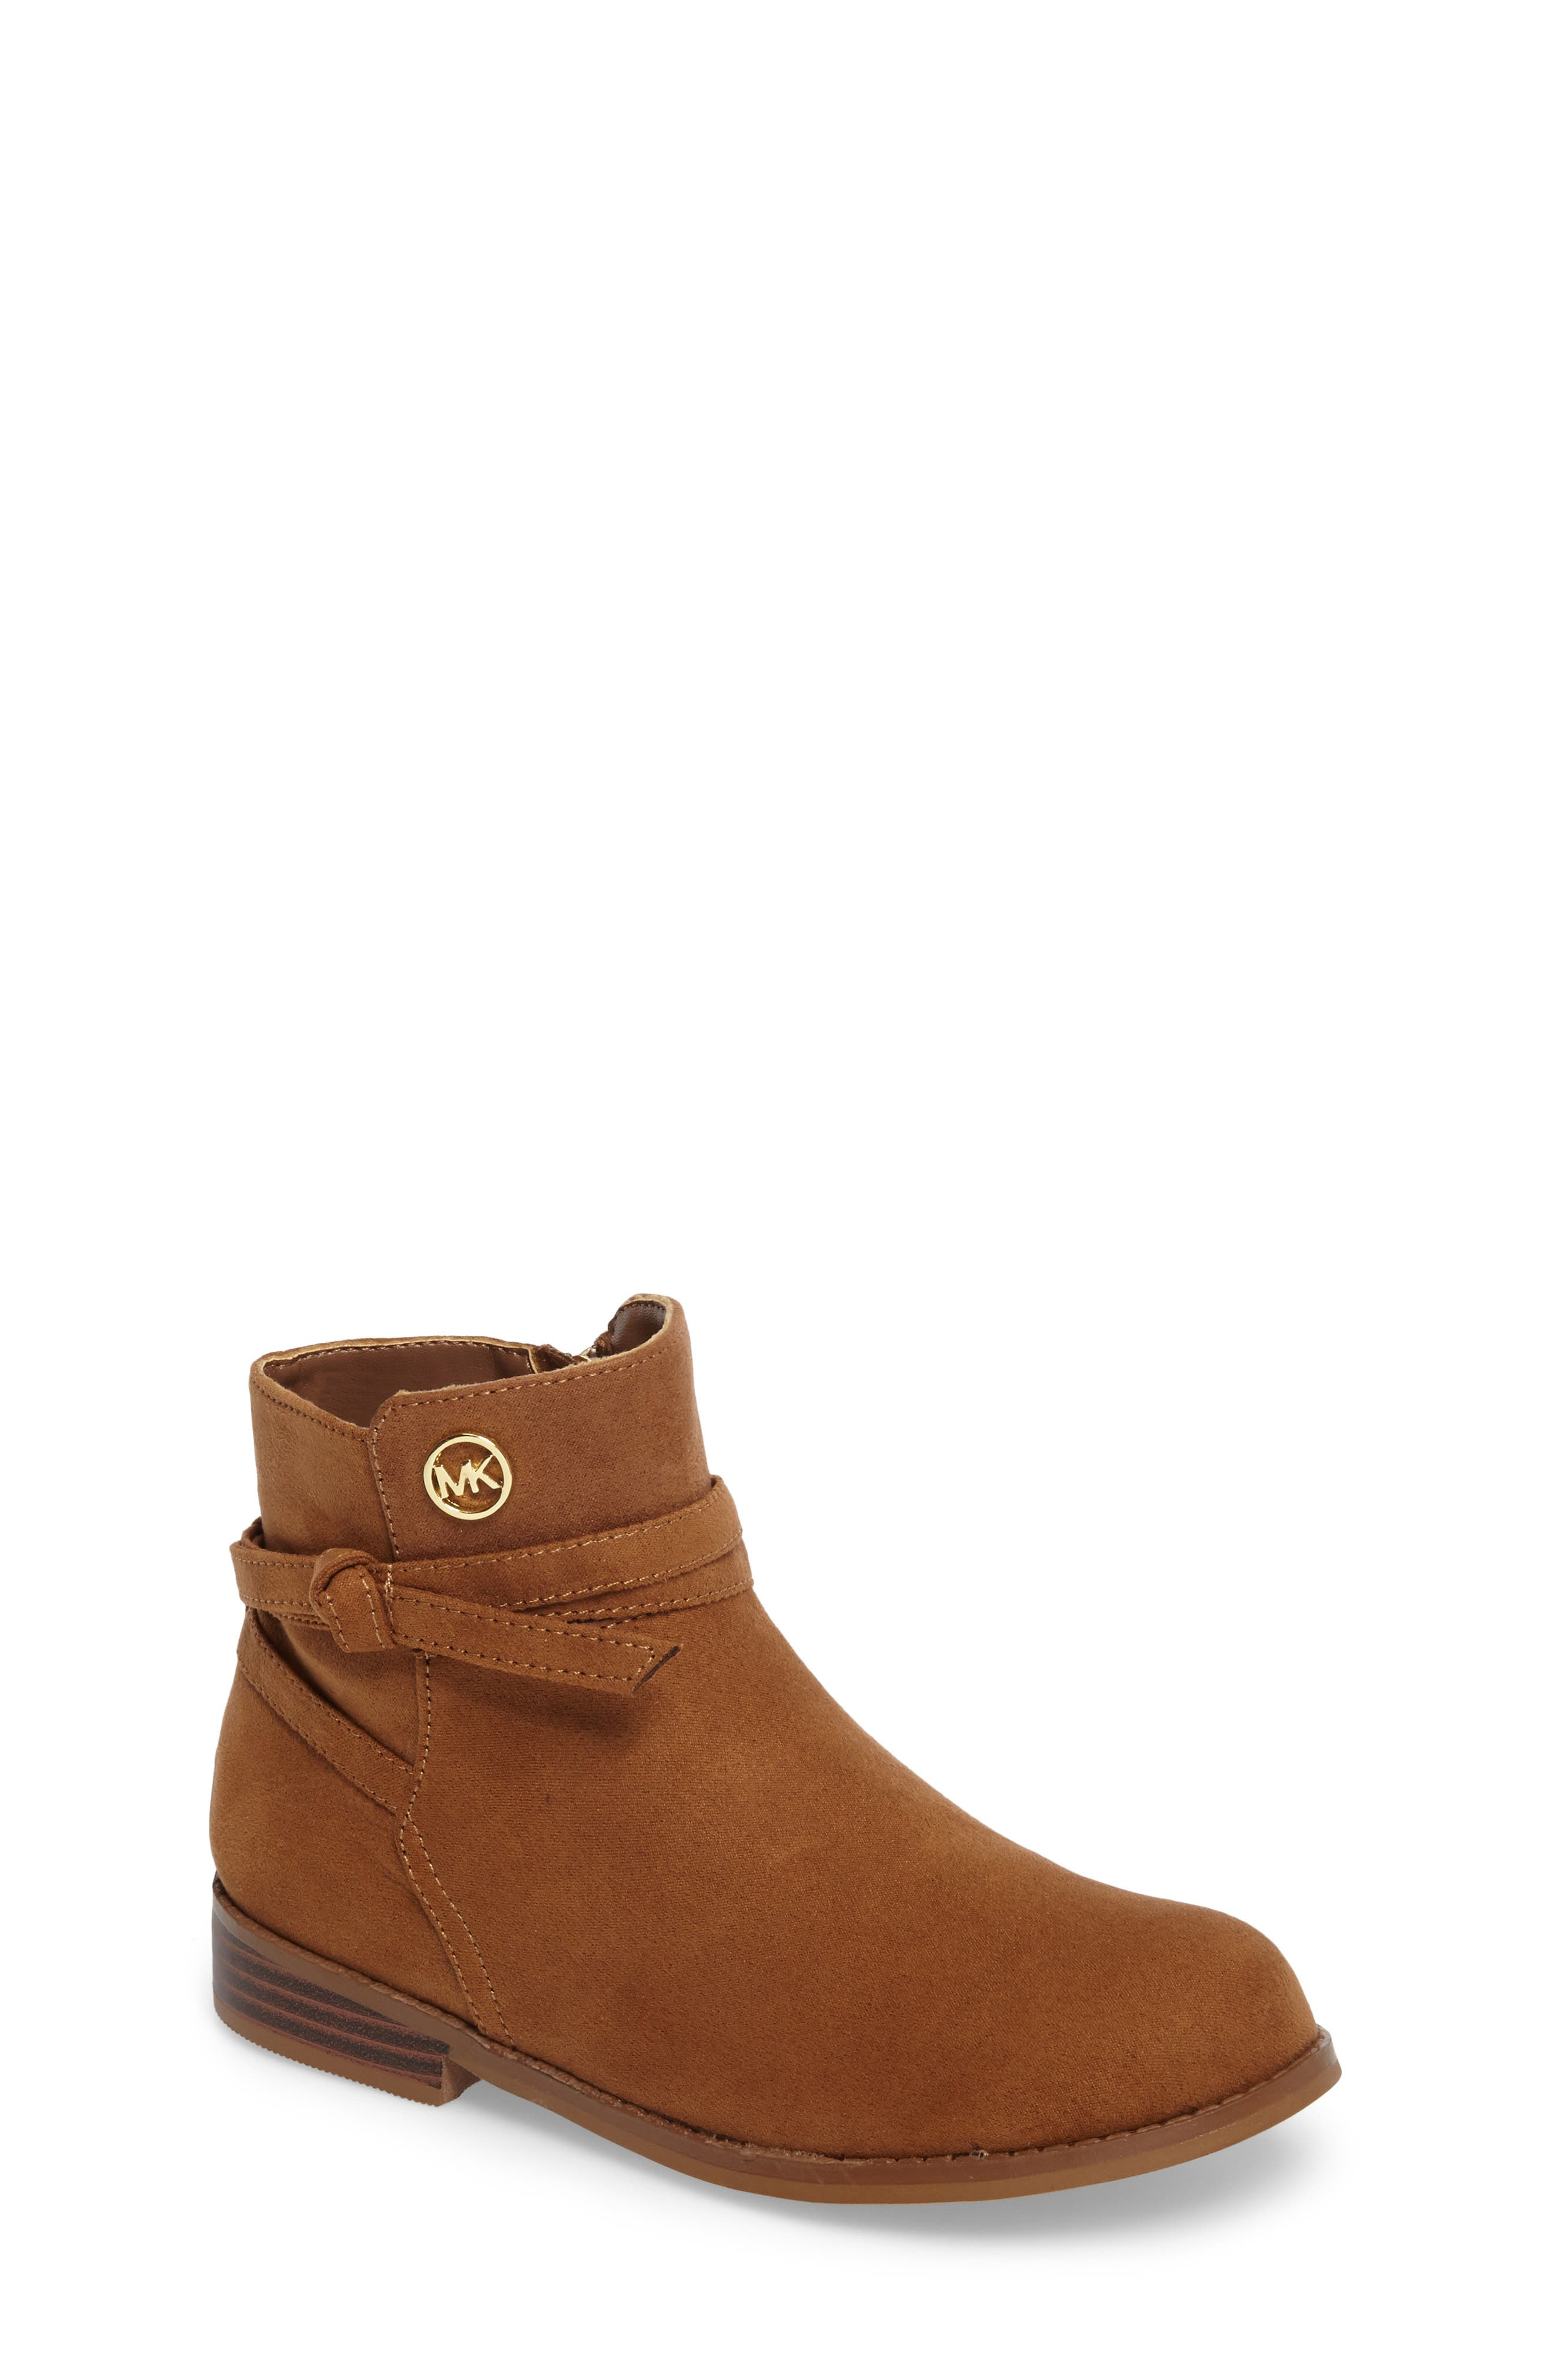 Main Image - MICHAEL Michael Kors Emma Carmen Knotted Bootie (Toddler, Little Kid & Big Kid)